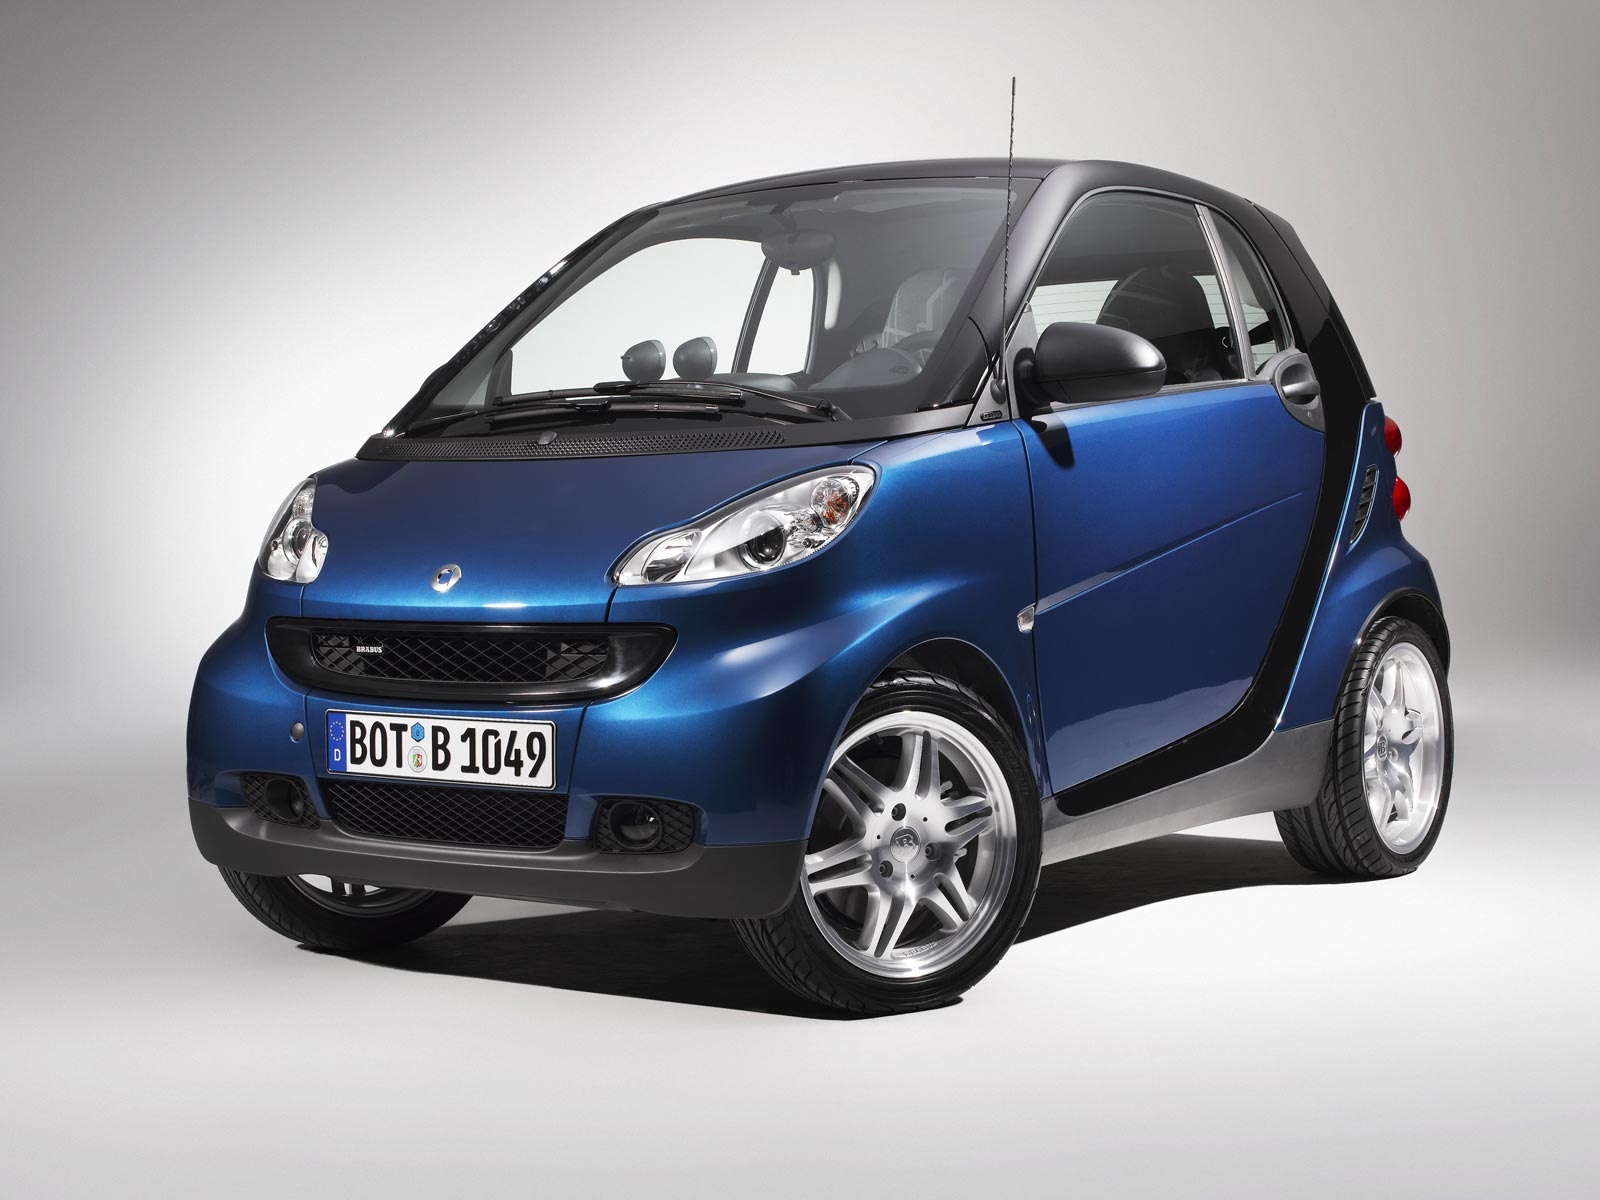 2007 smart fortwo autoguru. Black Bedroom Furniture Sets. Home Design Ideas